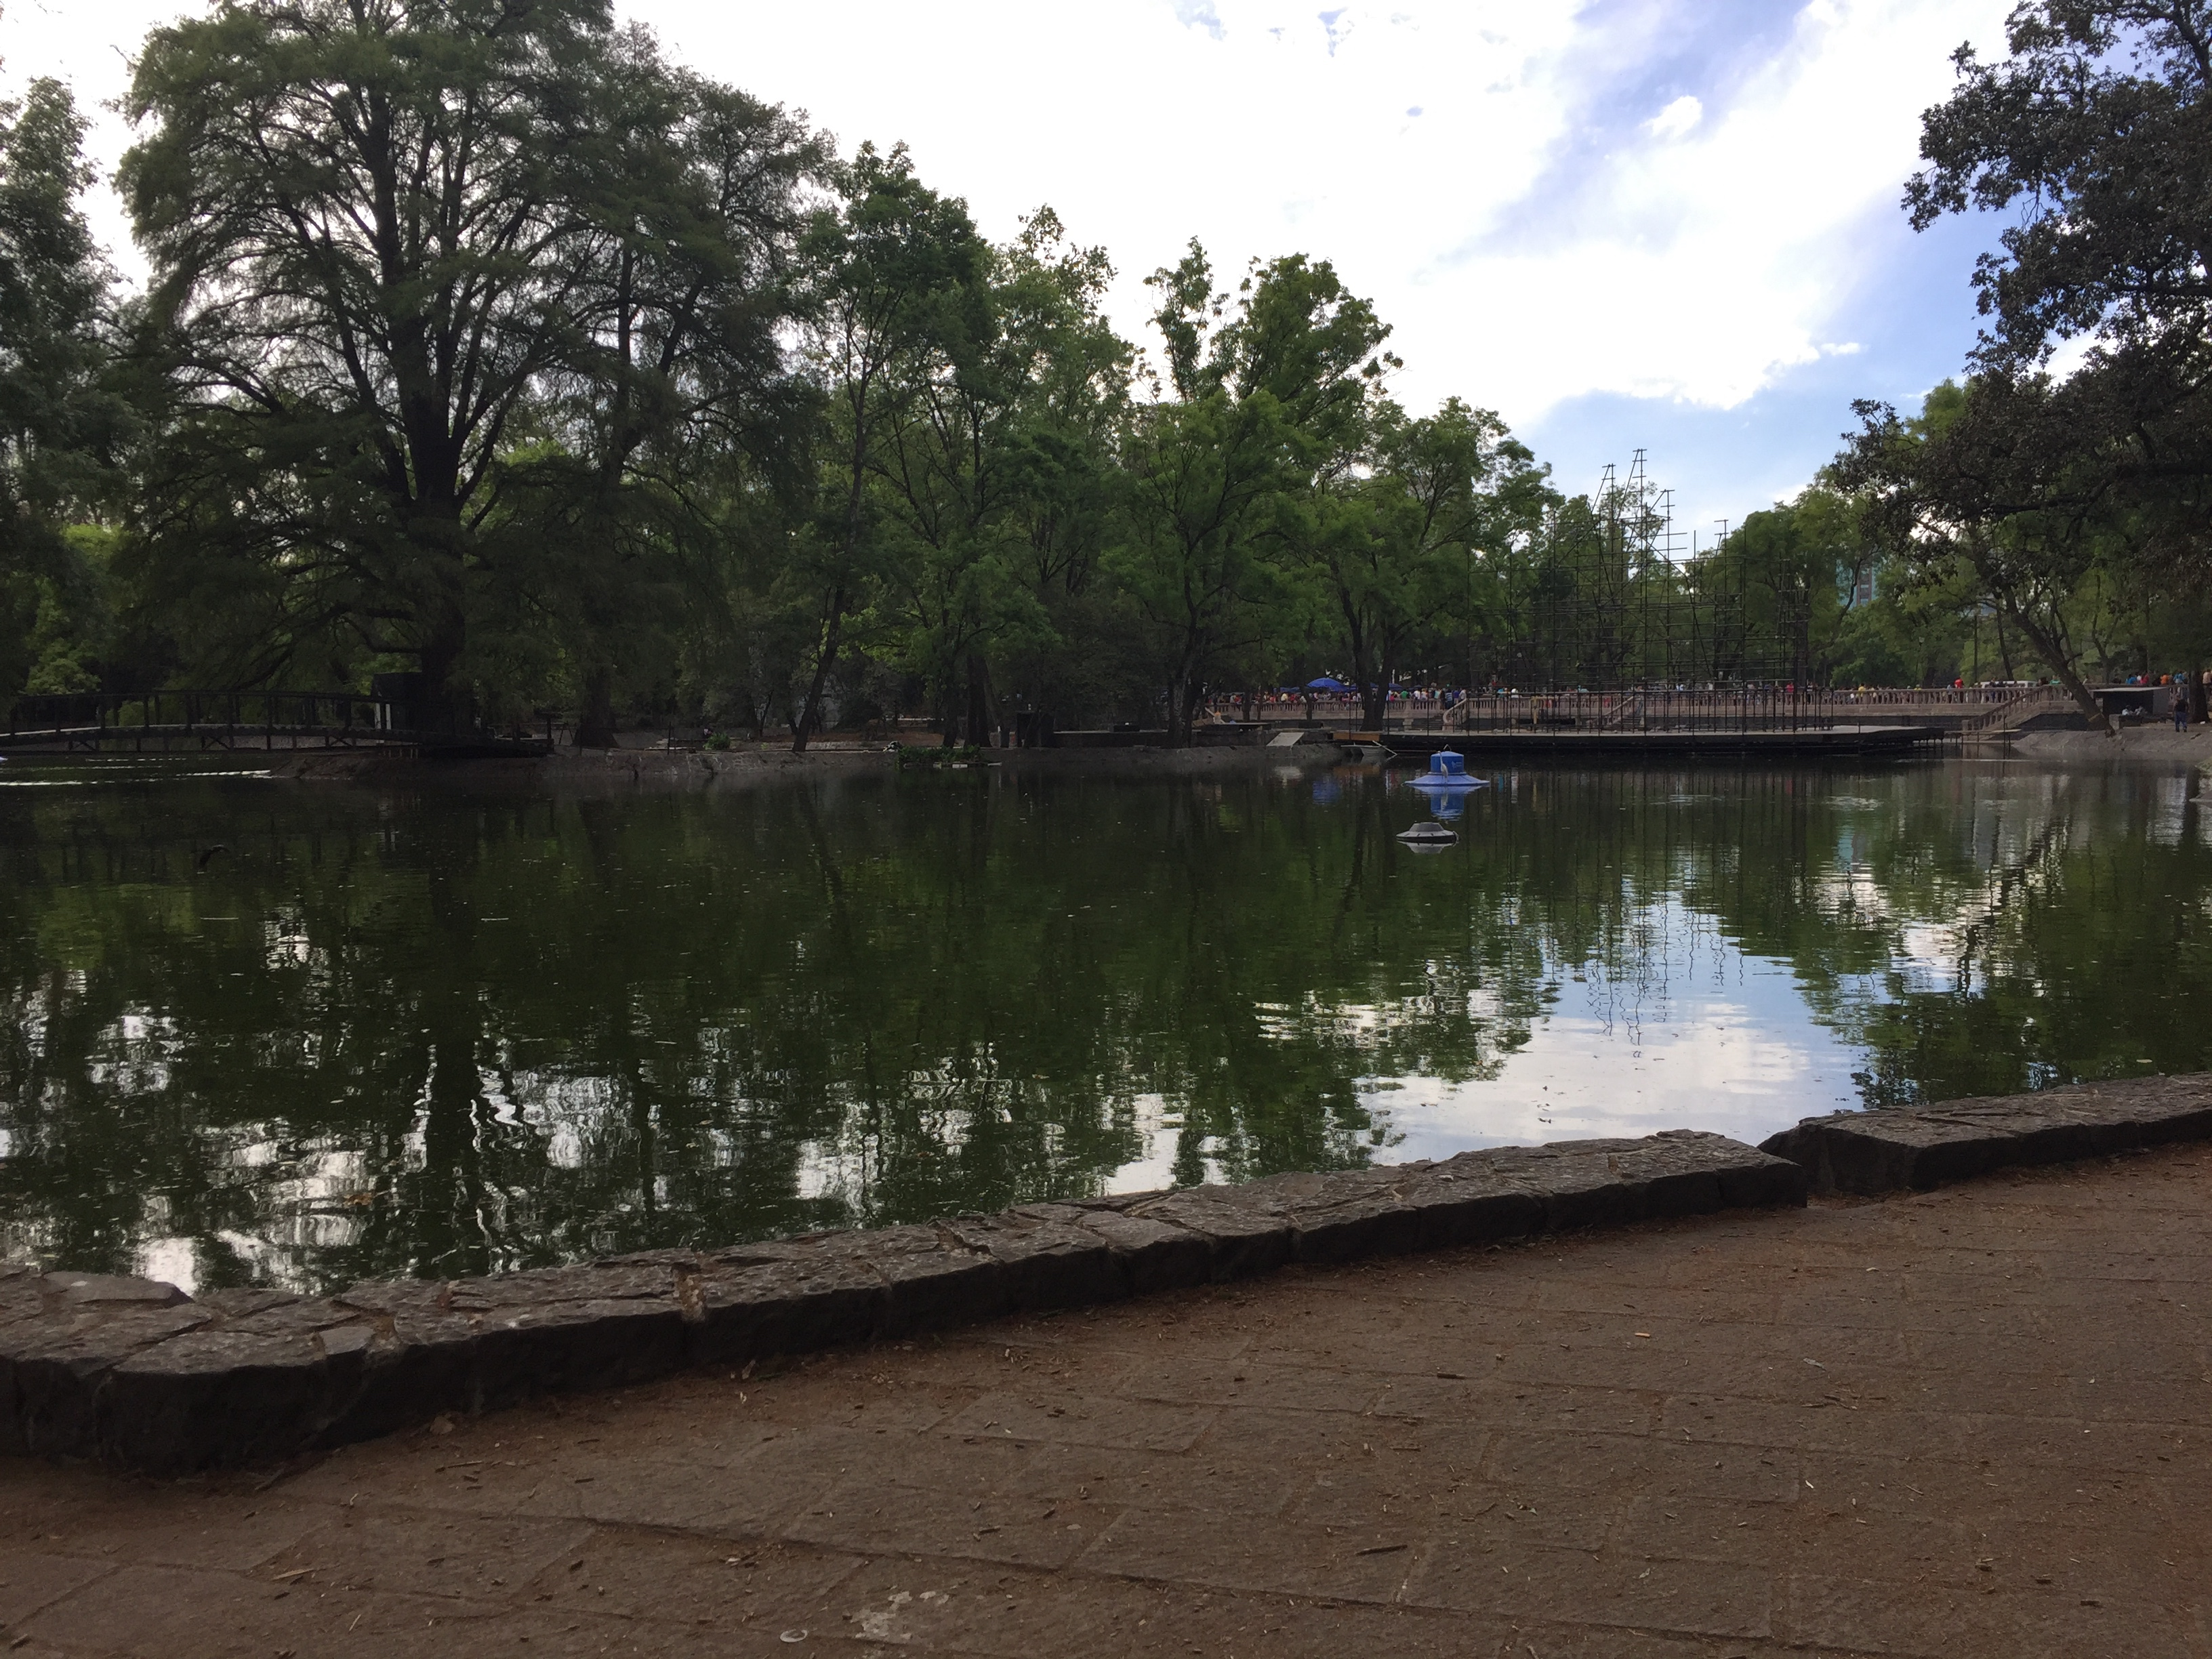 A pond in Chapultepec Park in Mexico City.